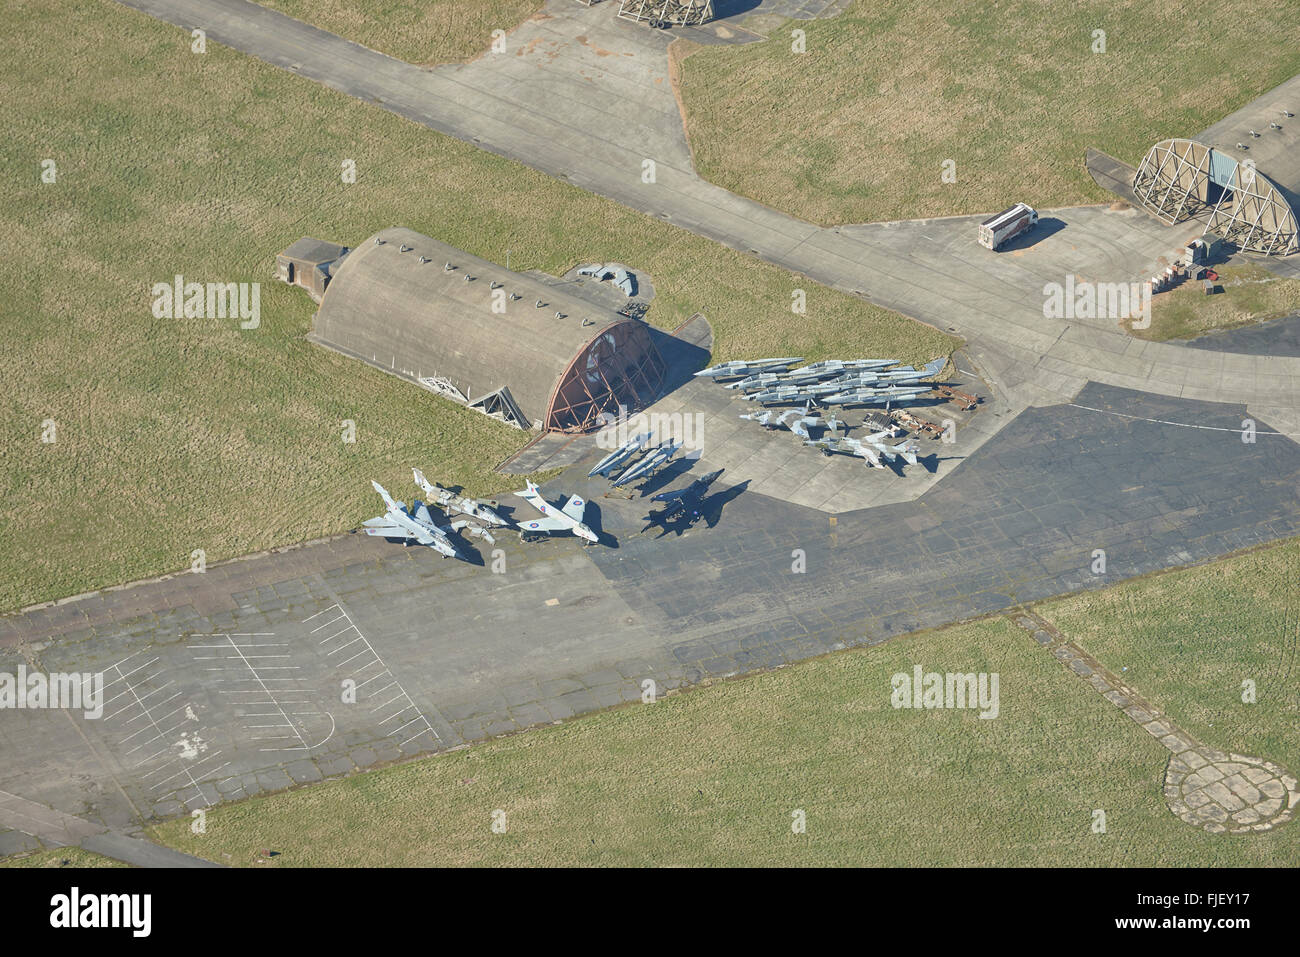 An aerial view of scrap military aircraft at an airfield in Suffolk - Stock Image